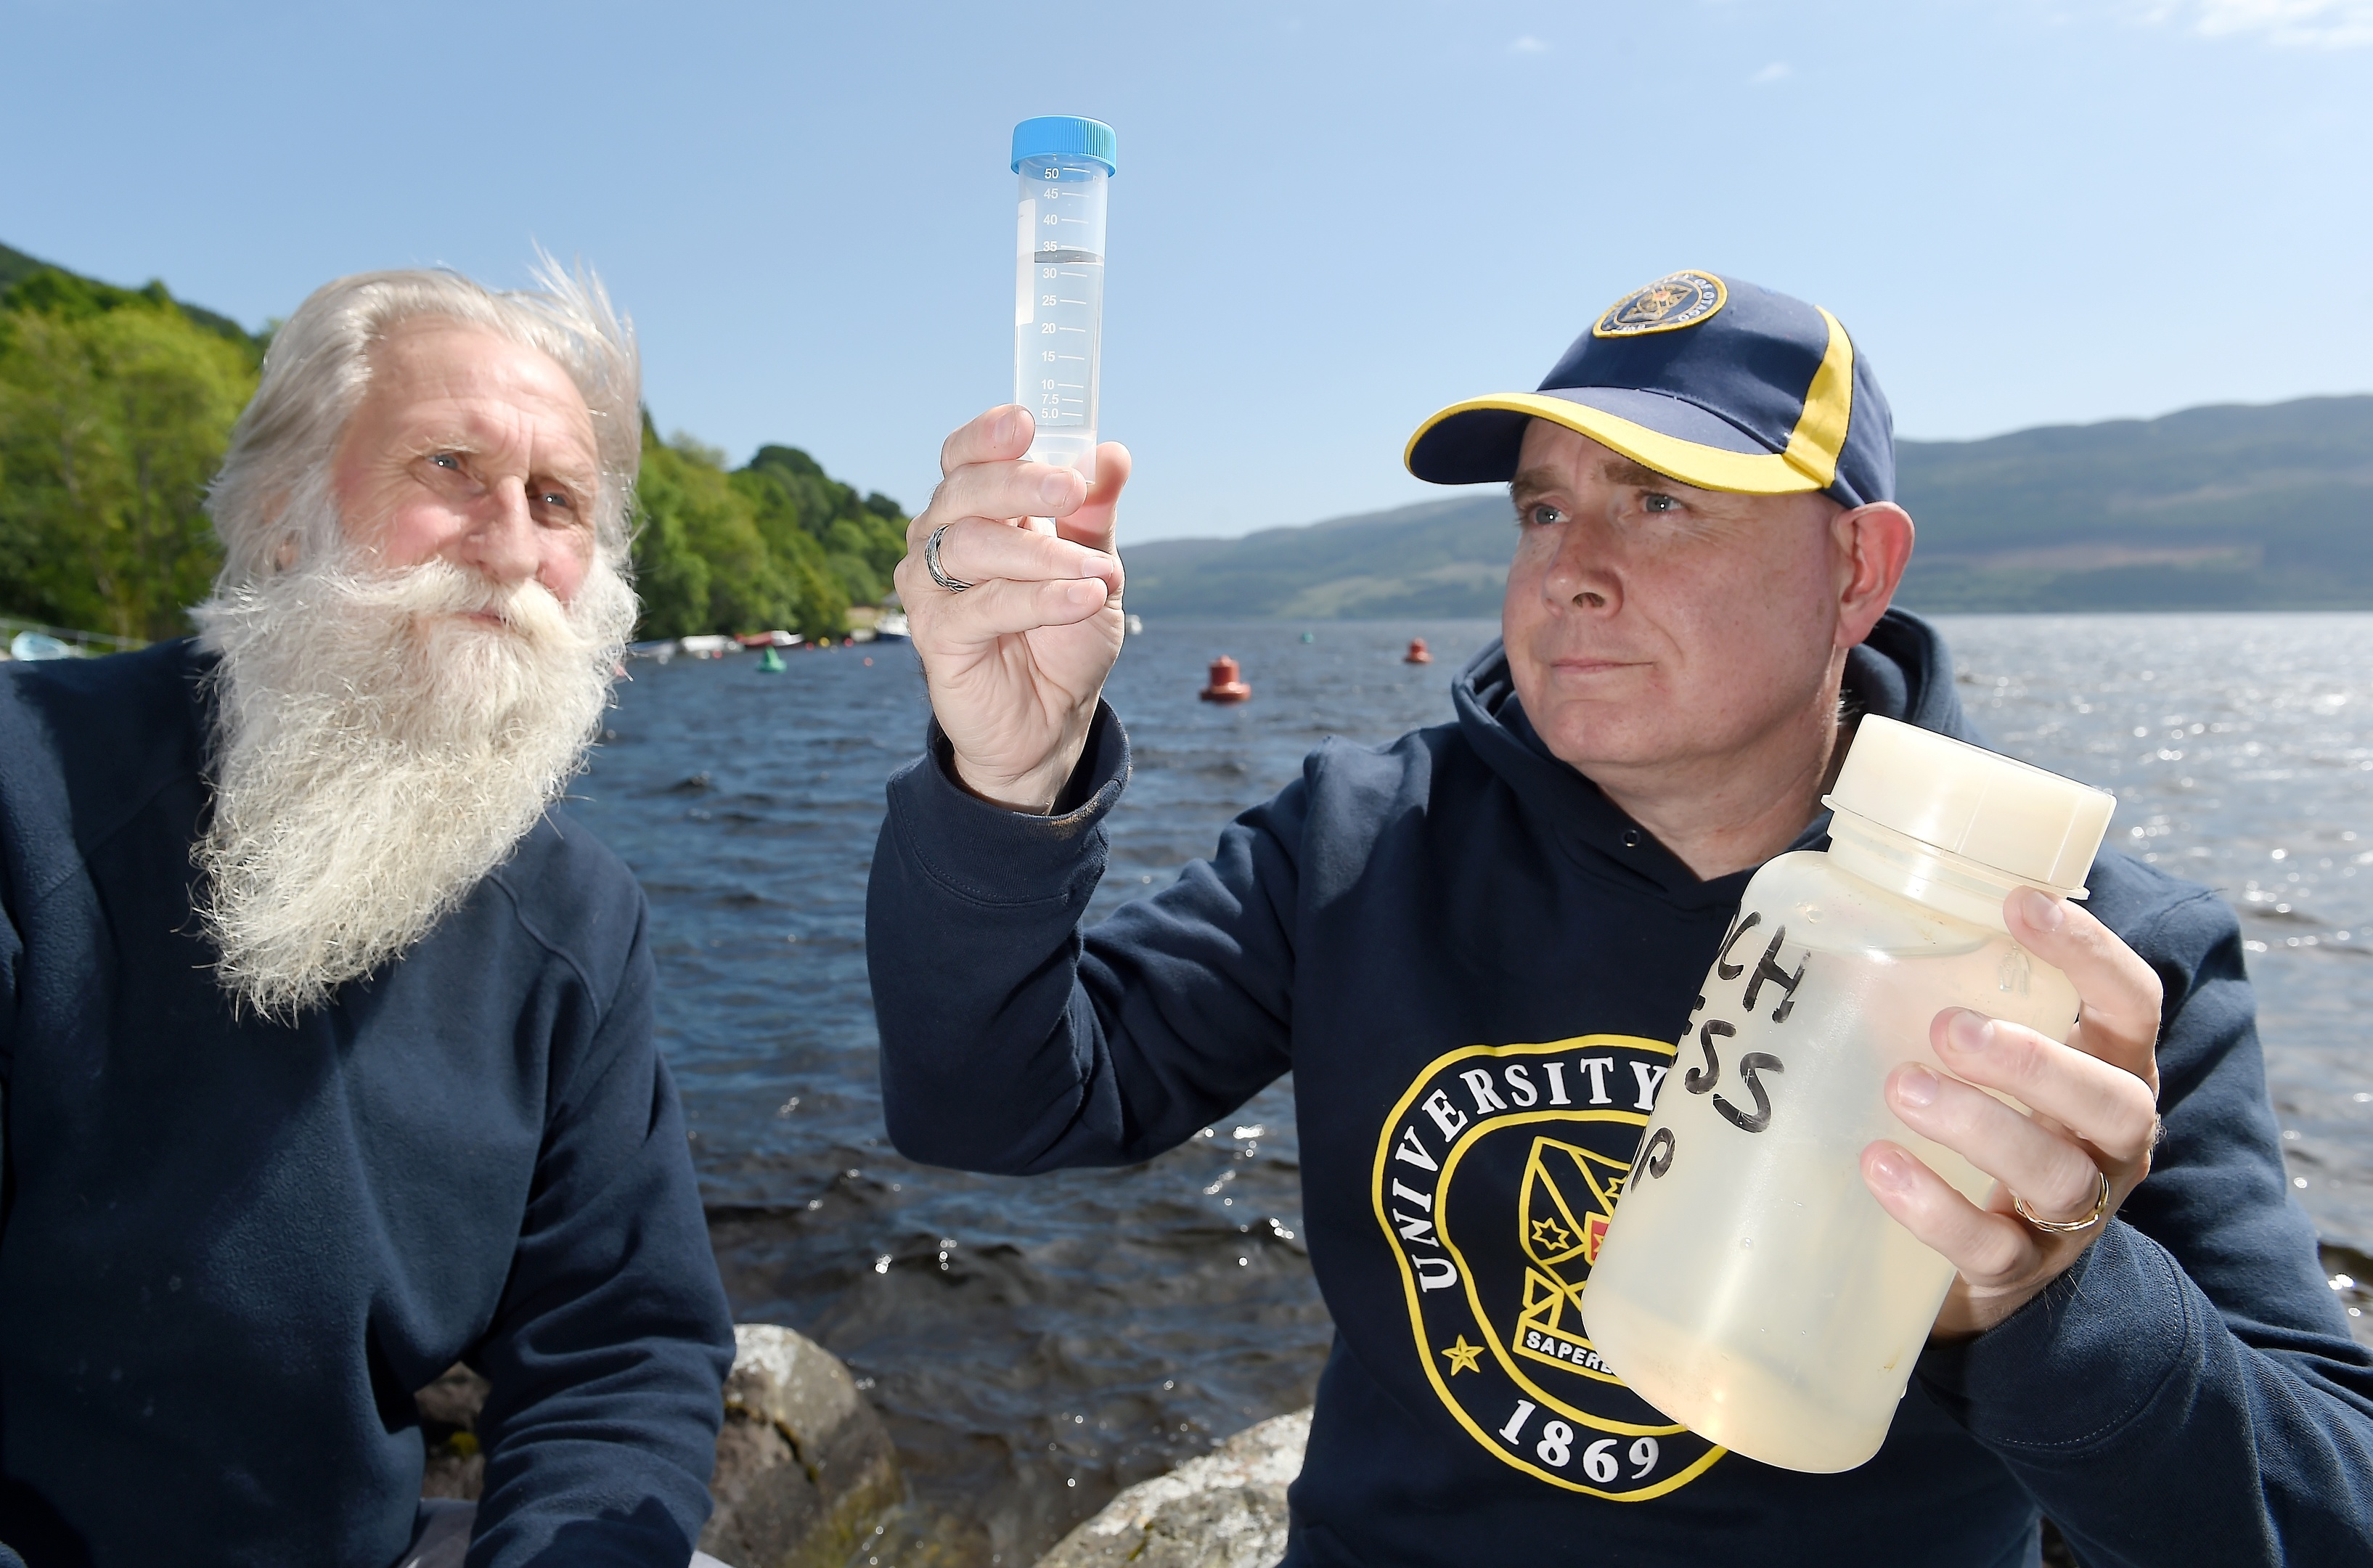 Professor Neil Gemmell of the University of Otago, New Zealand and Adrian Shine of the Loch Ness Project with water samples containing DNA which might lead to the discovery of Nessie